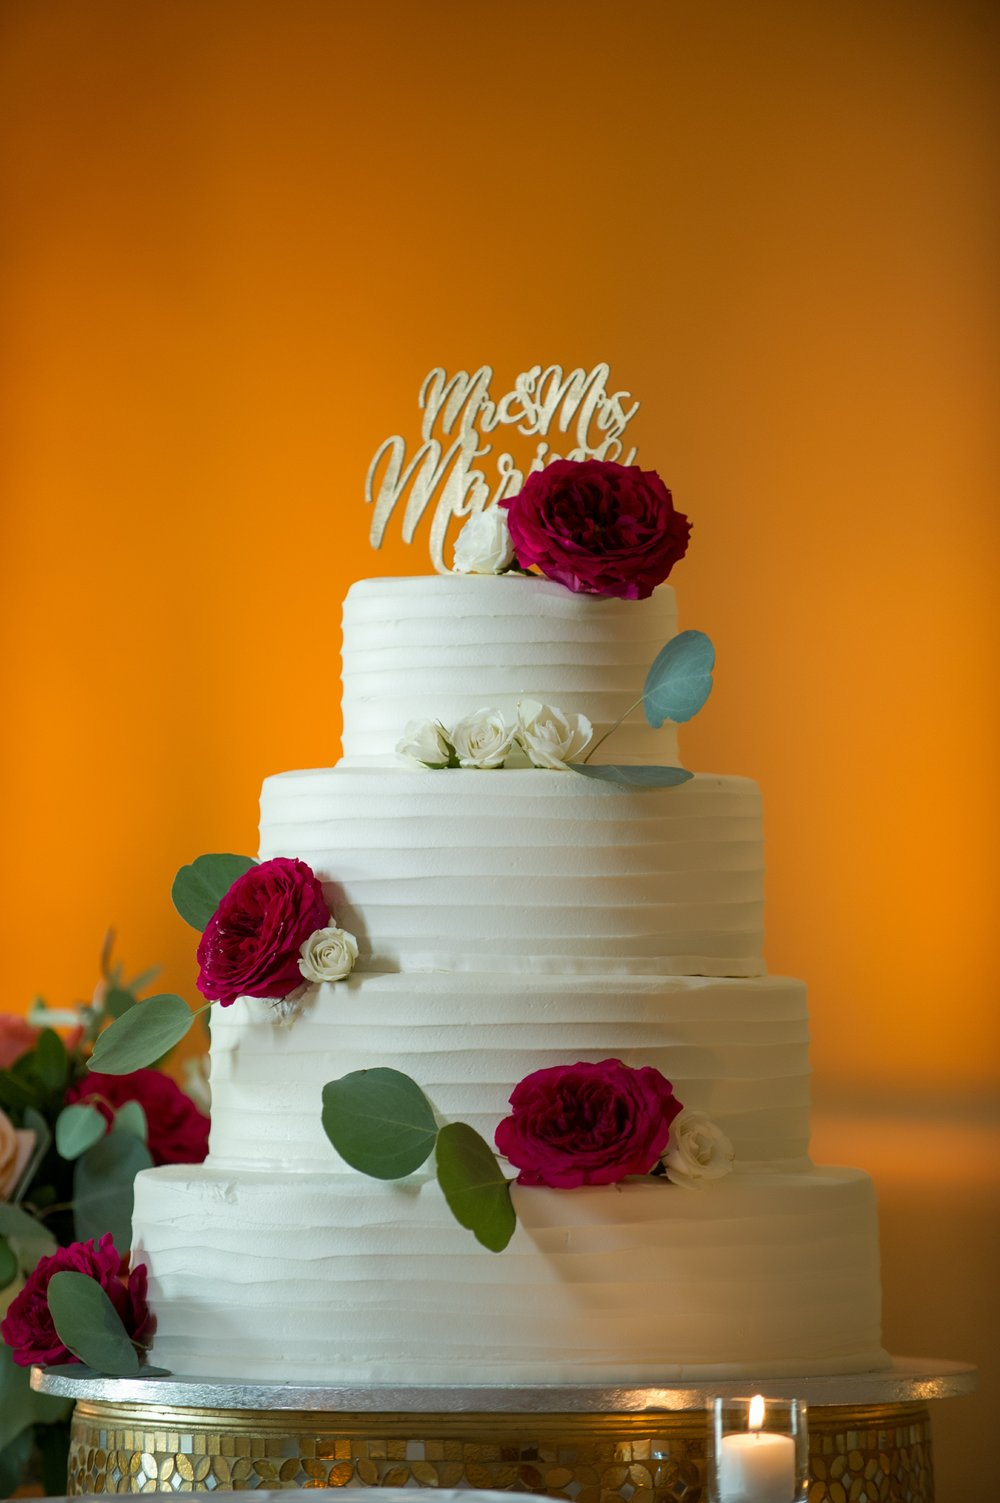 The couple chose a beautifully classic white four tiered cake, decorated with textured icing, luscious florals, and finished off with a custom gold topper.